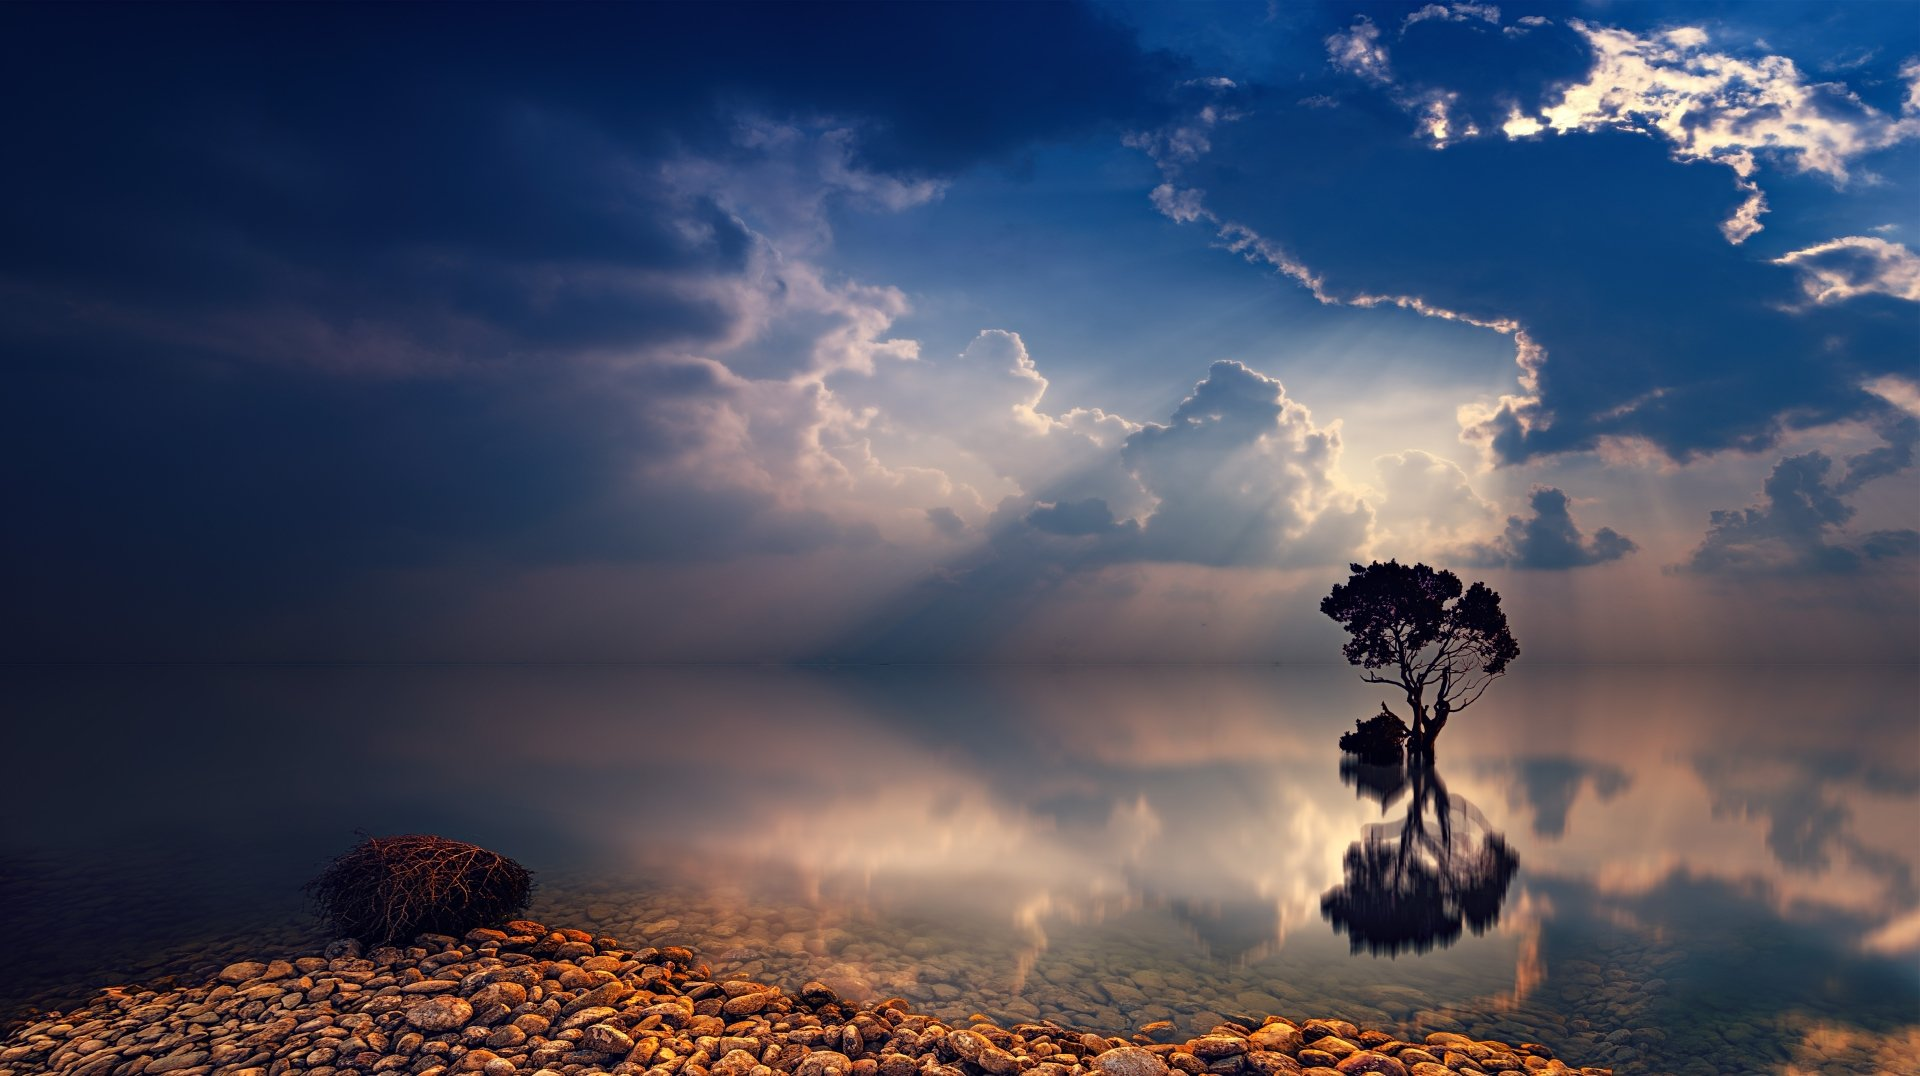 Earth - Tree  Ocean Reflection Stone Sunbeam Cloud Nature Twilight Lonely Tree Wallpaper